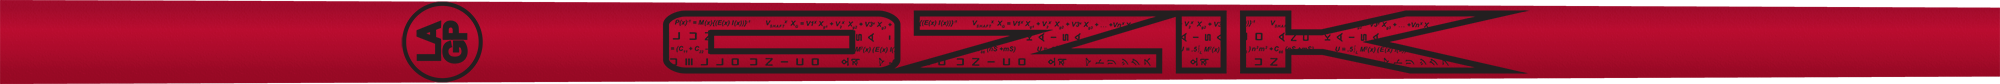 Ozik TPHDe: Candy Apple Red Black Matte - Wood 71 XX